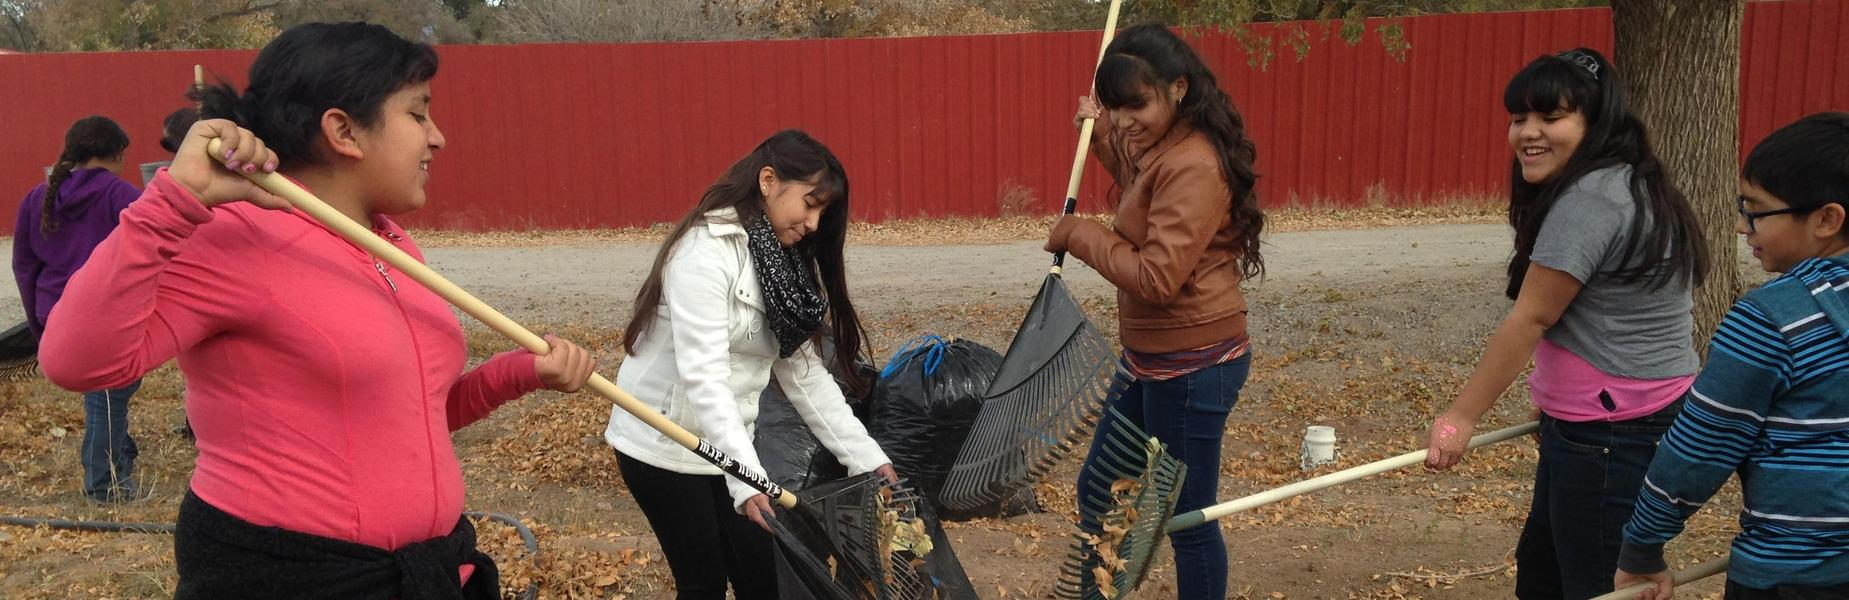 SVA students raking leaves